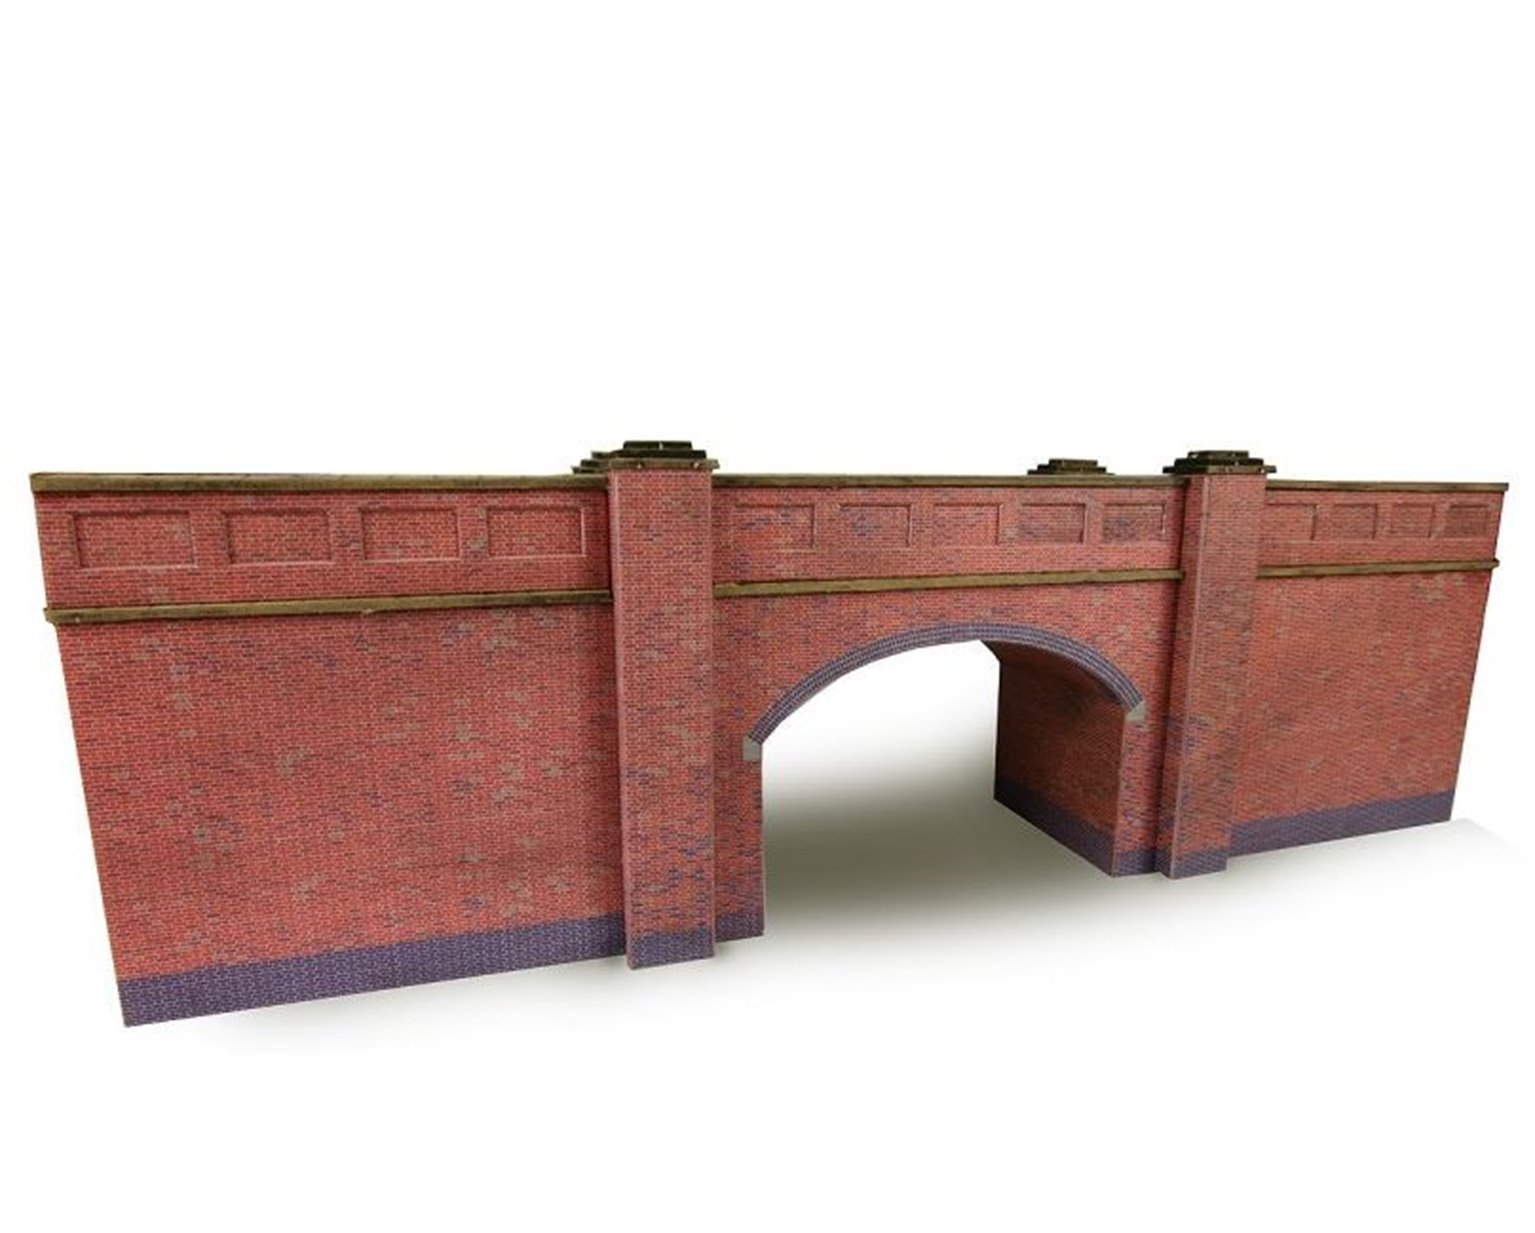 Metcalf Brick Railway Bridge N Scale